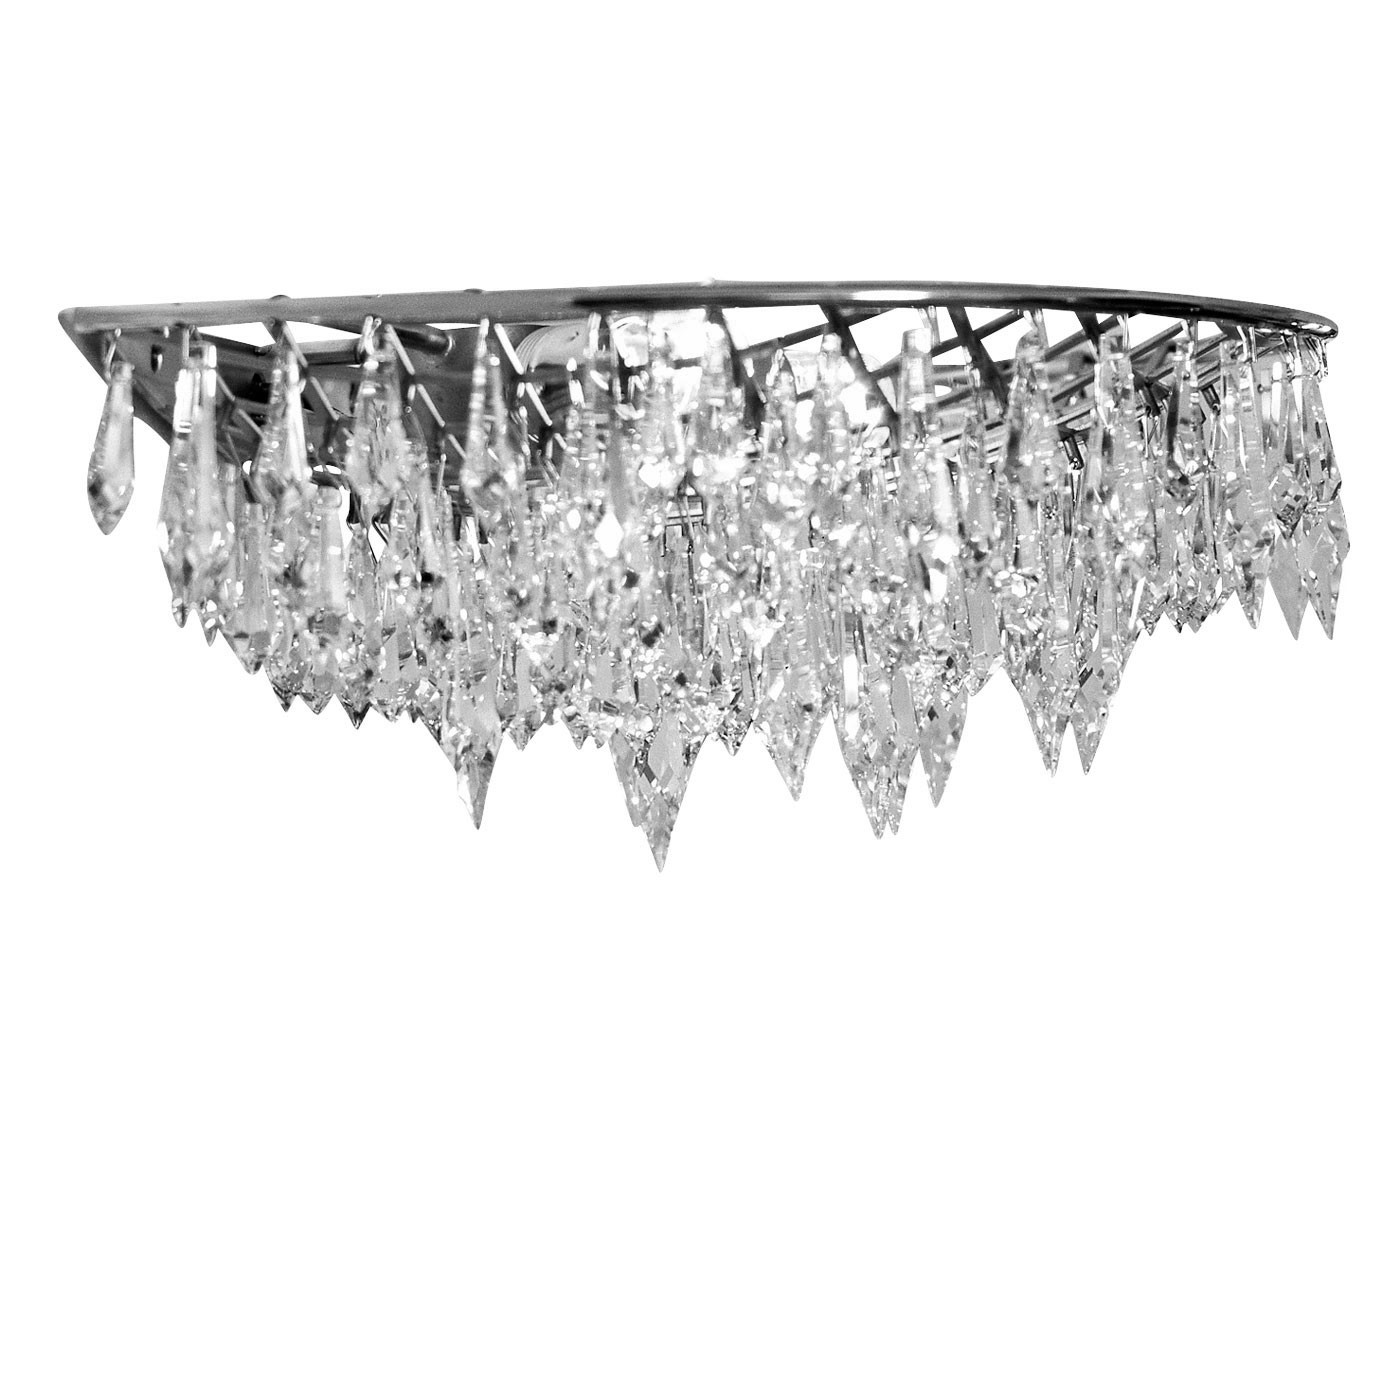 Anthologie Quartett Crystal Rain 45 Wandleuchte